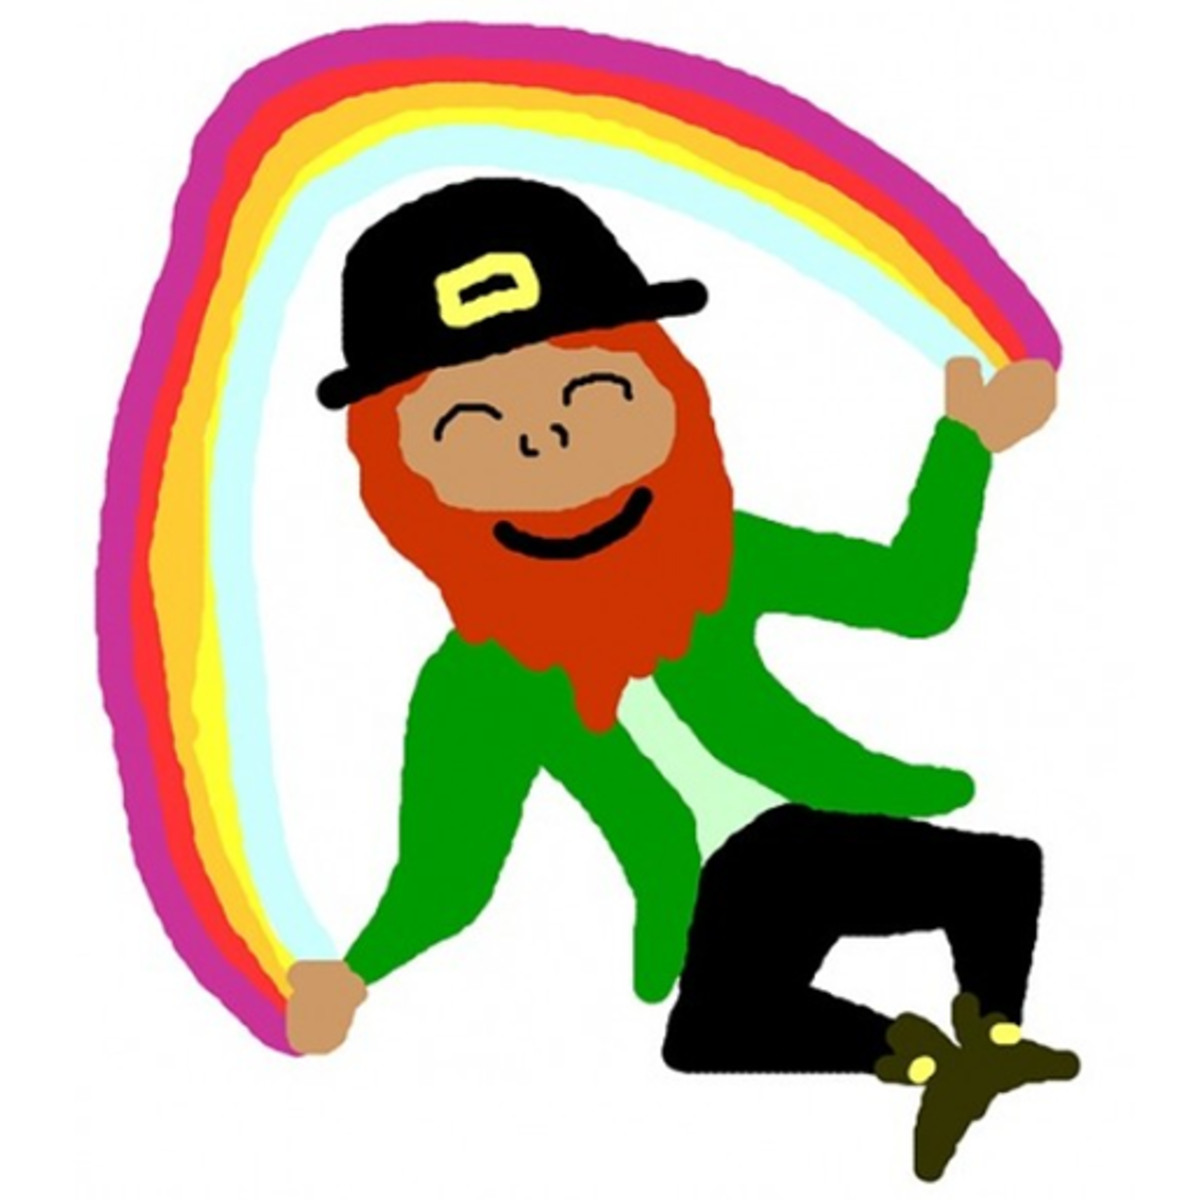 Leprechaun Dancing the Irish Jig with a Rainbow